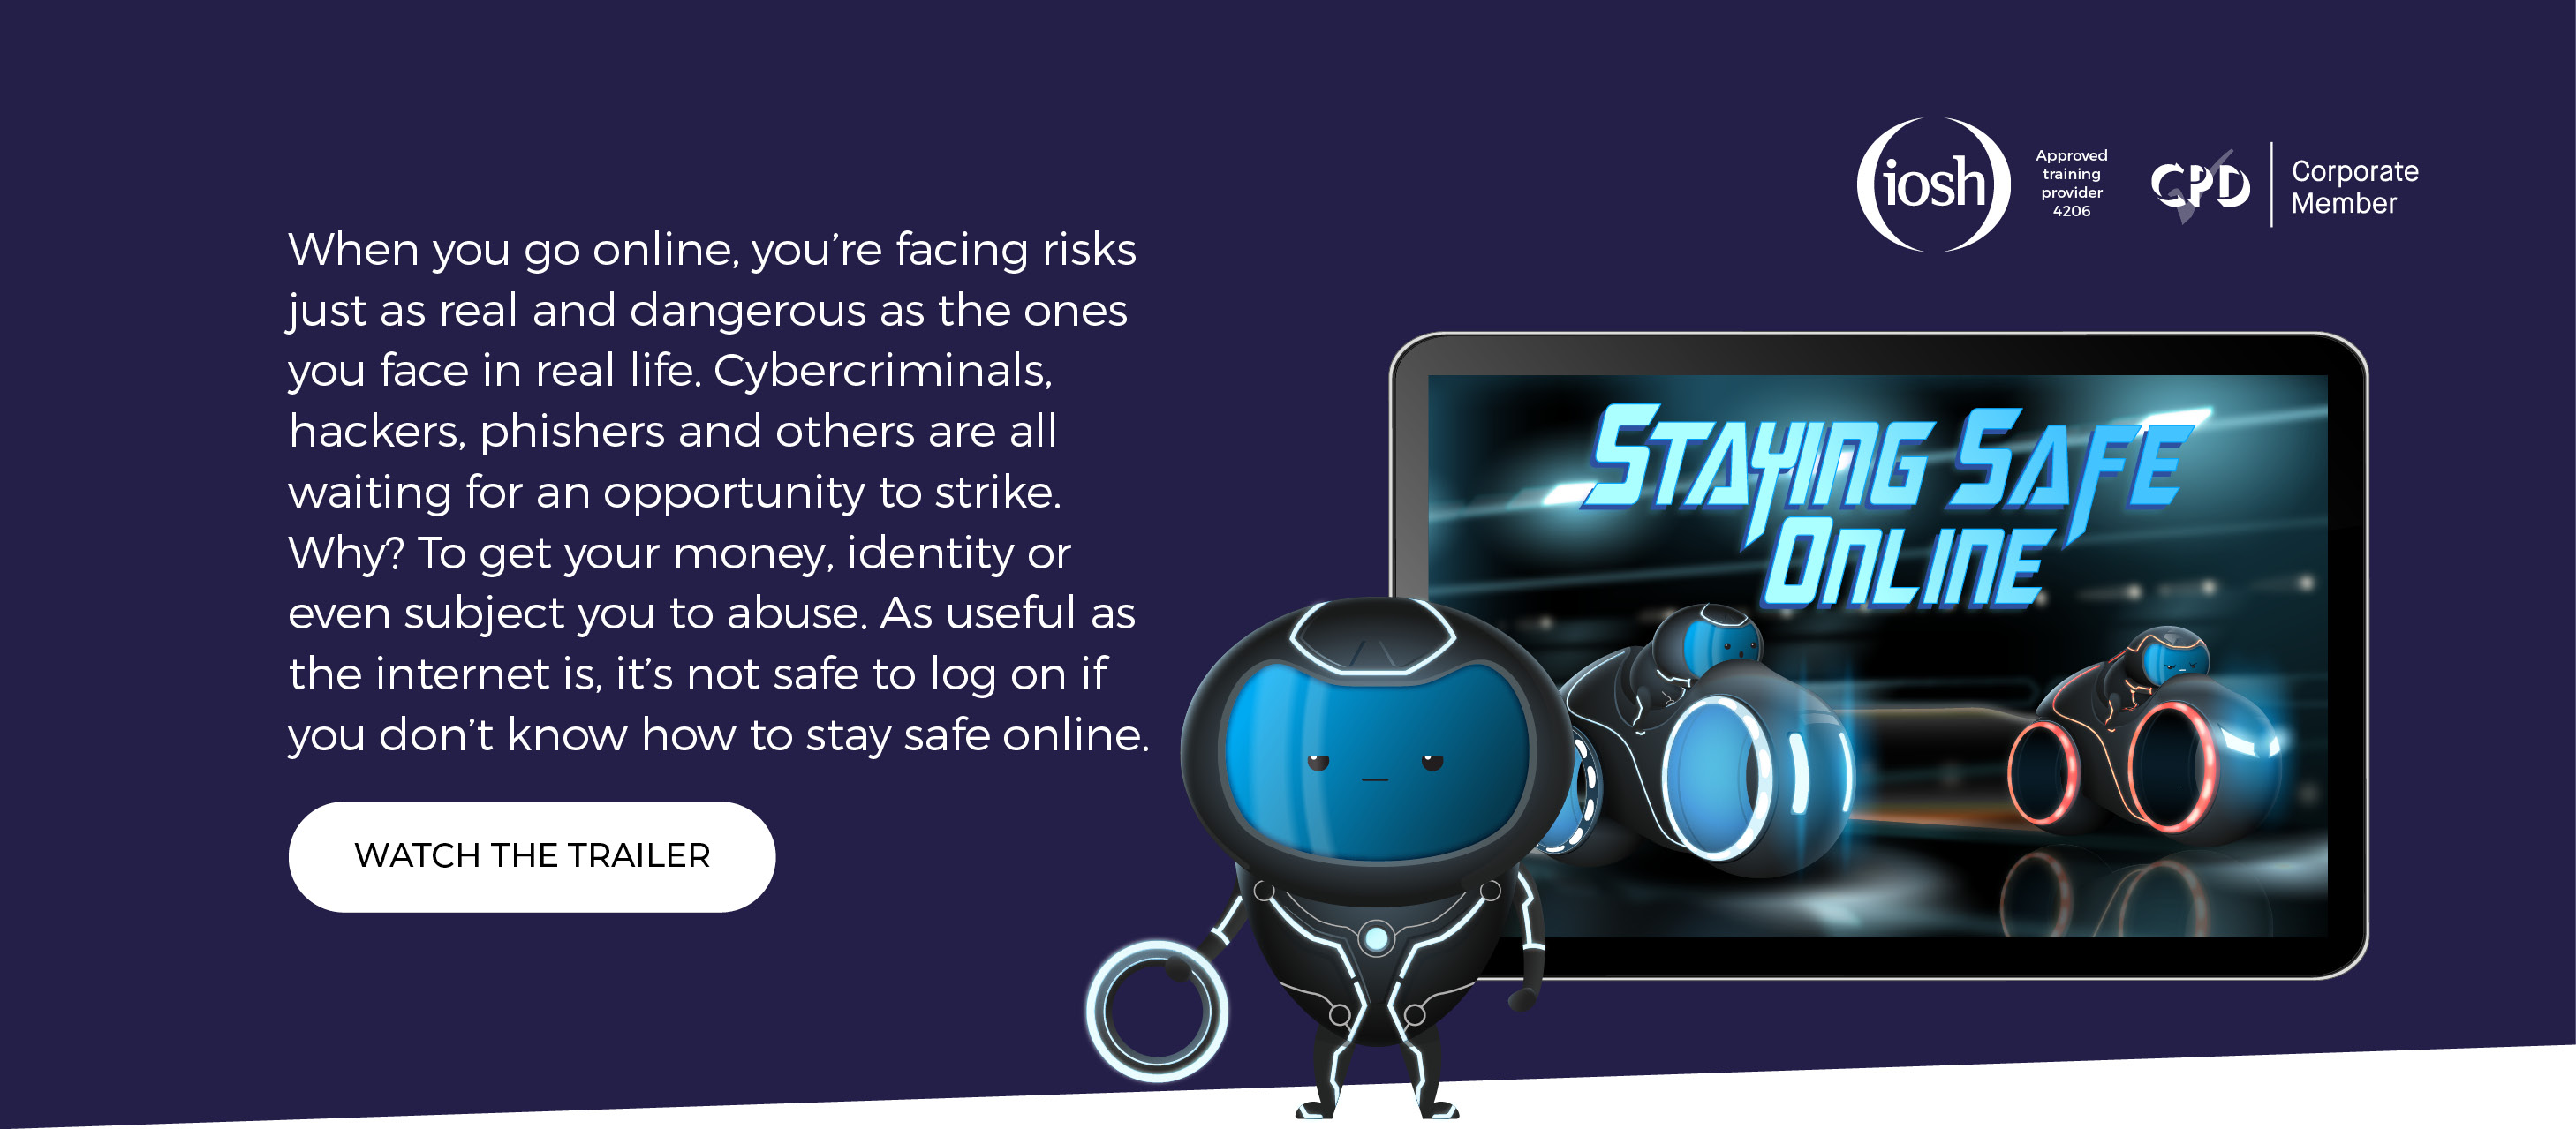 iAM 00038 - Staying Safe Online - Landing Page2